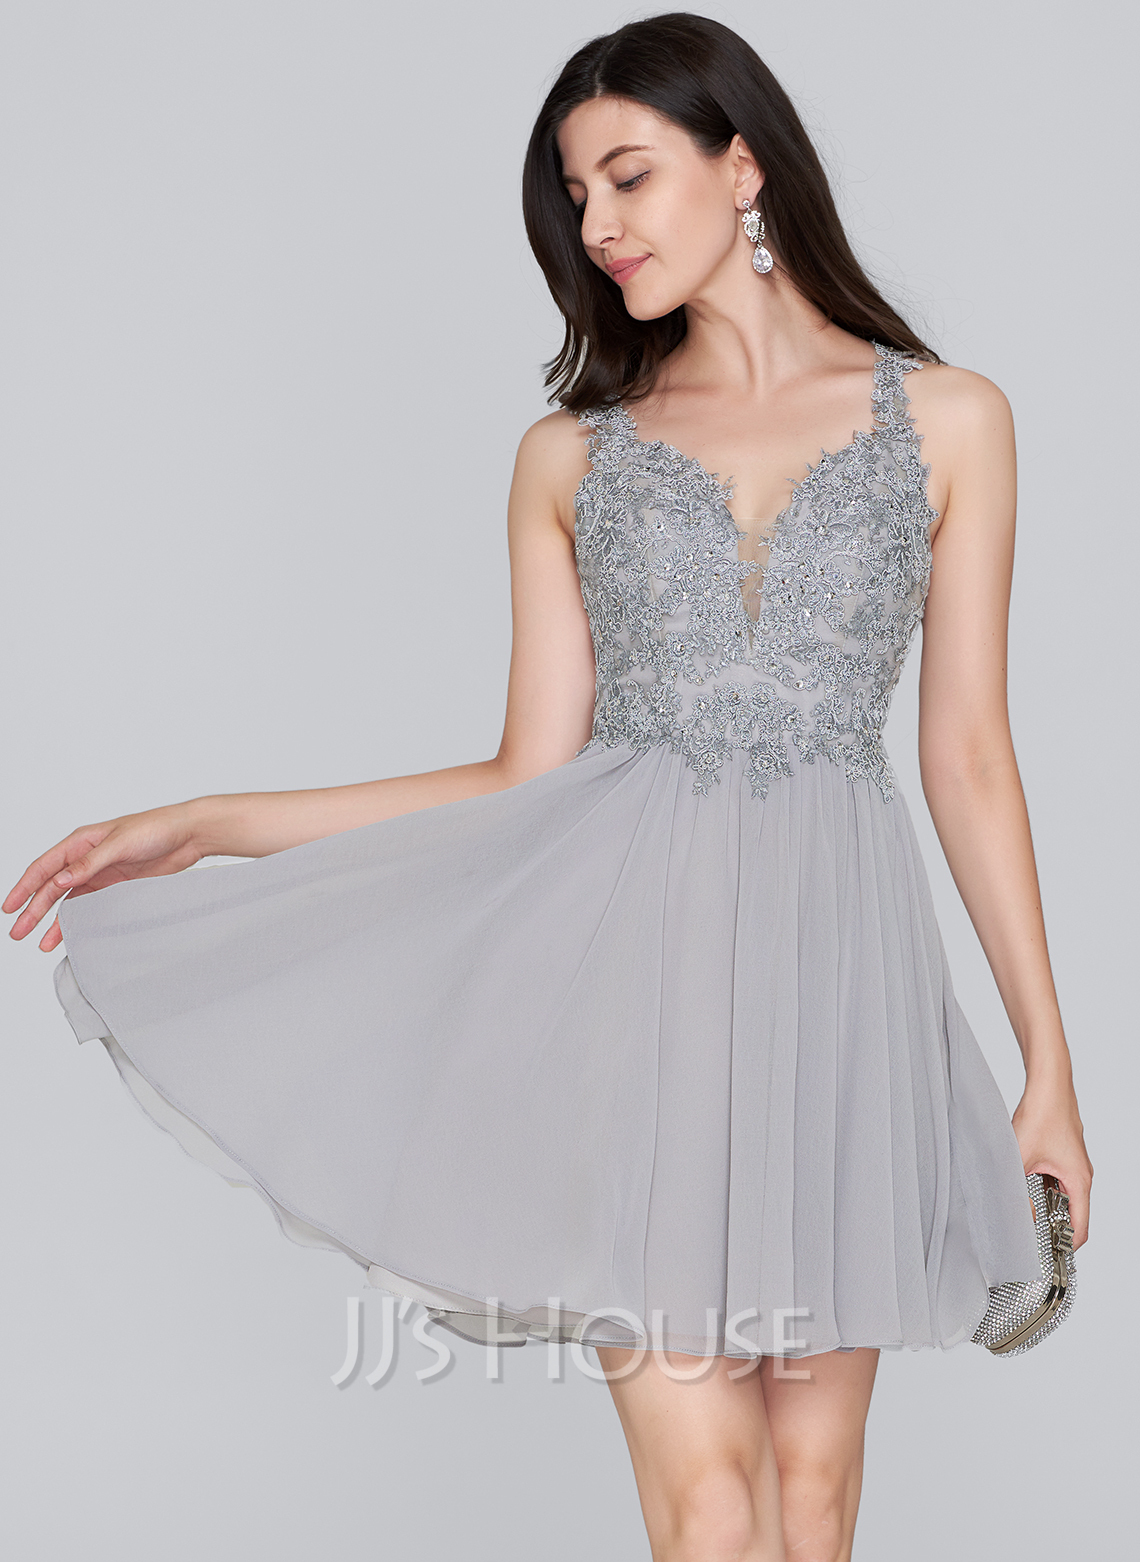 7f3355dbacb A-Line Princess Sweetheart Short Mini Chiffon Homecoming Dress With Beading  Sequins. Loading zoom